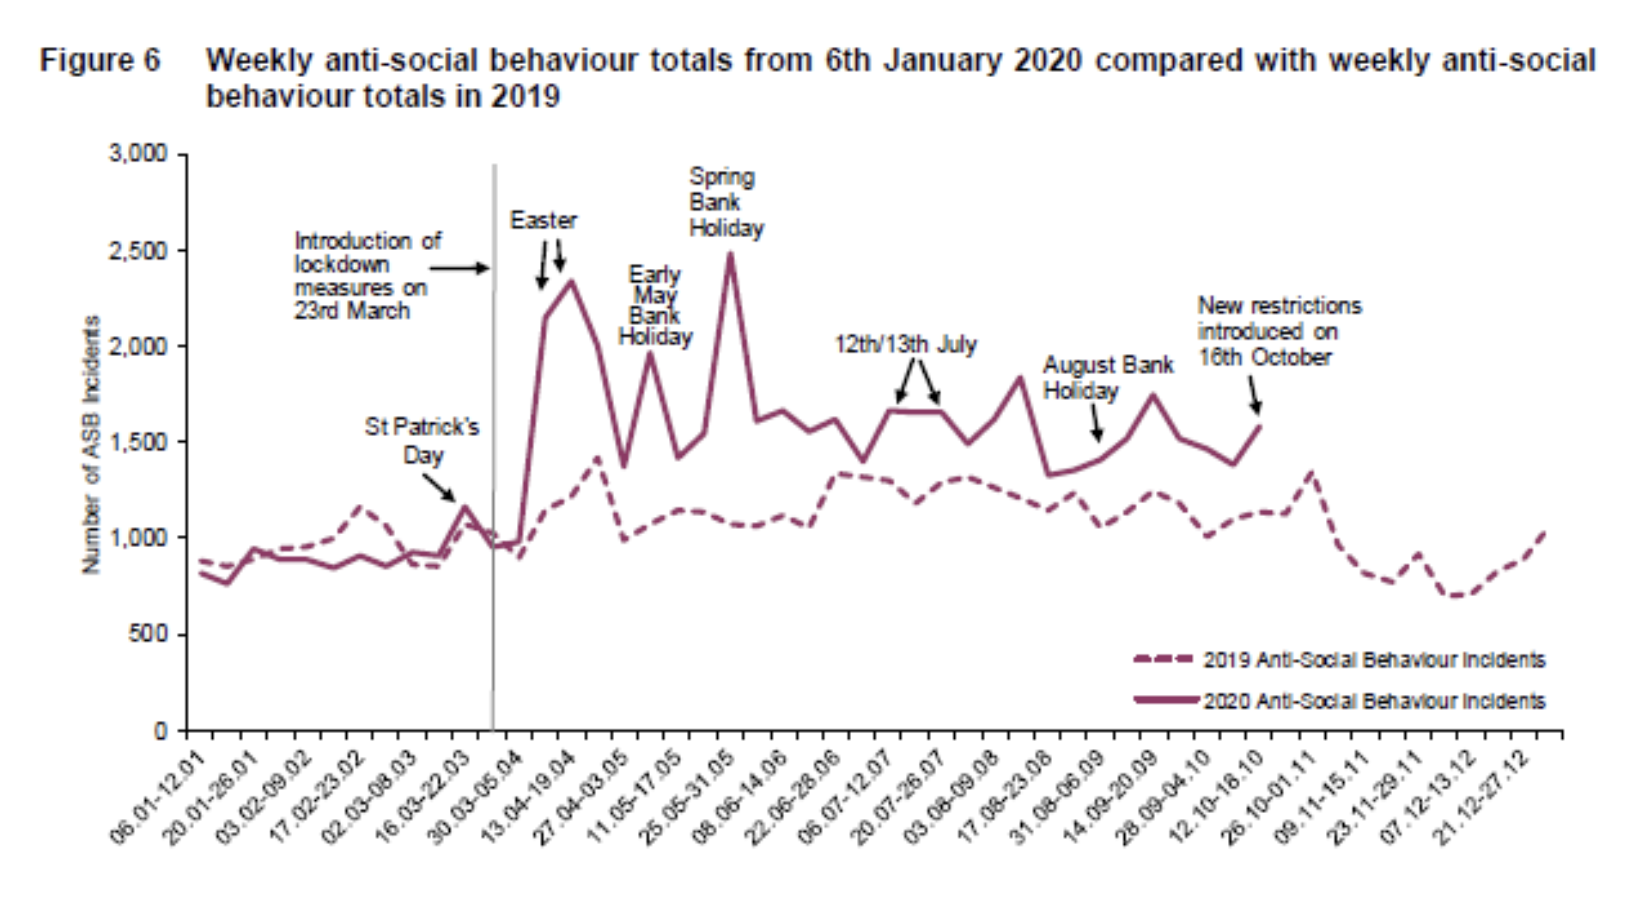 Figure 6 Weekly anti-socil behaviour totals from 6th January 2020 compared with weekly anti-social behaviour totals in 2019